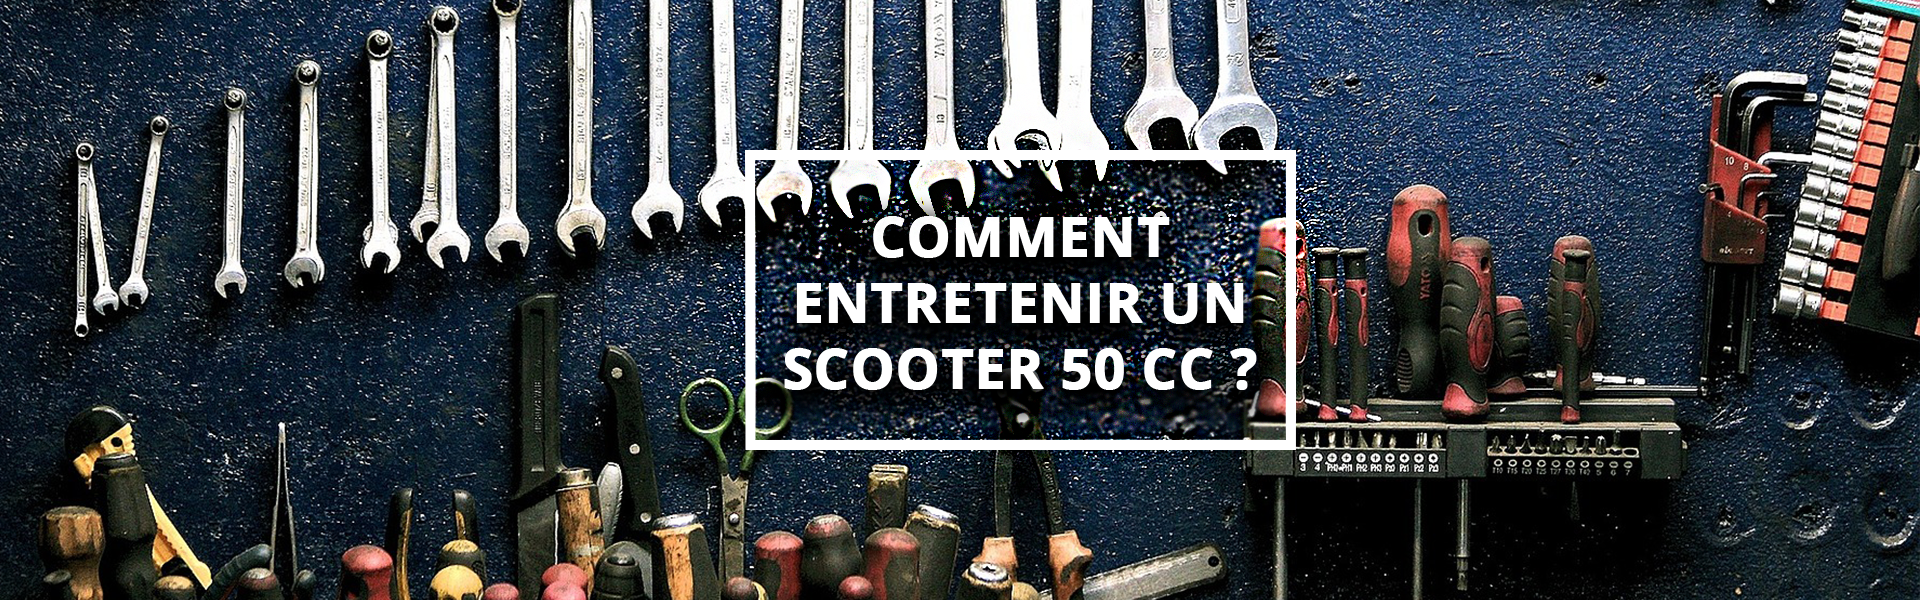 Comment entretenir un scooter 50cc-1